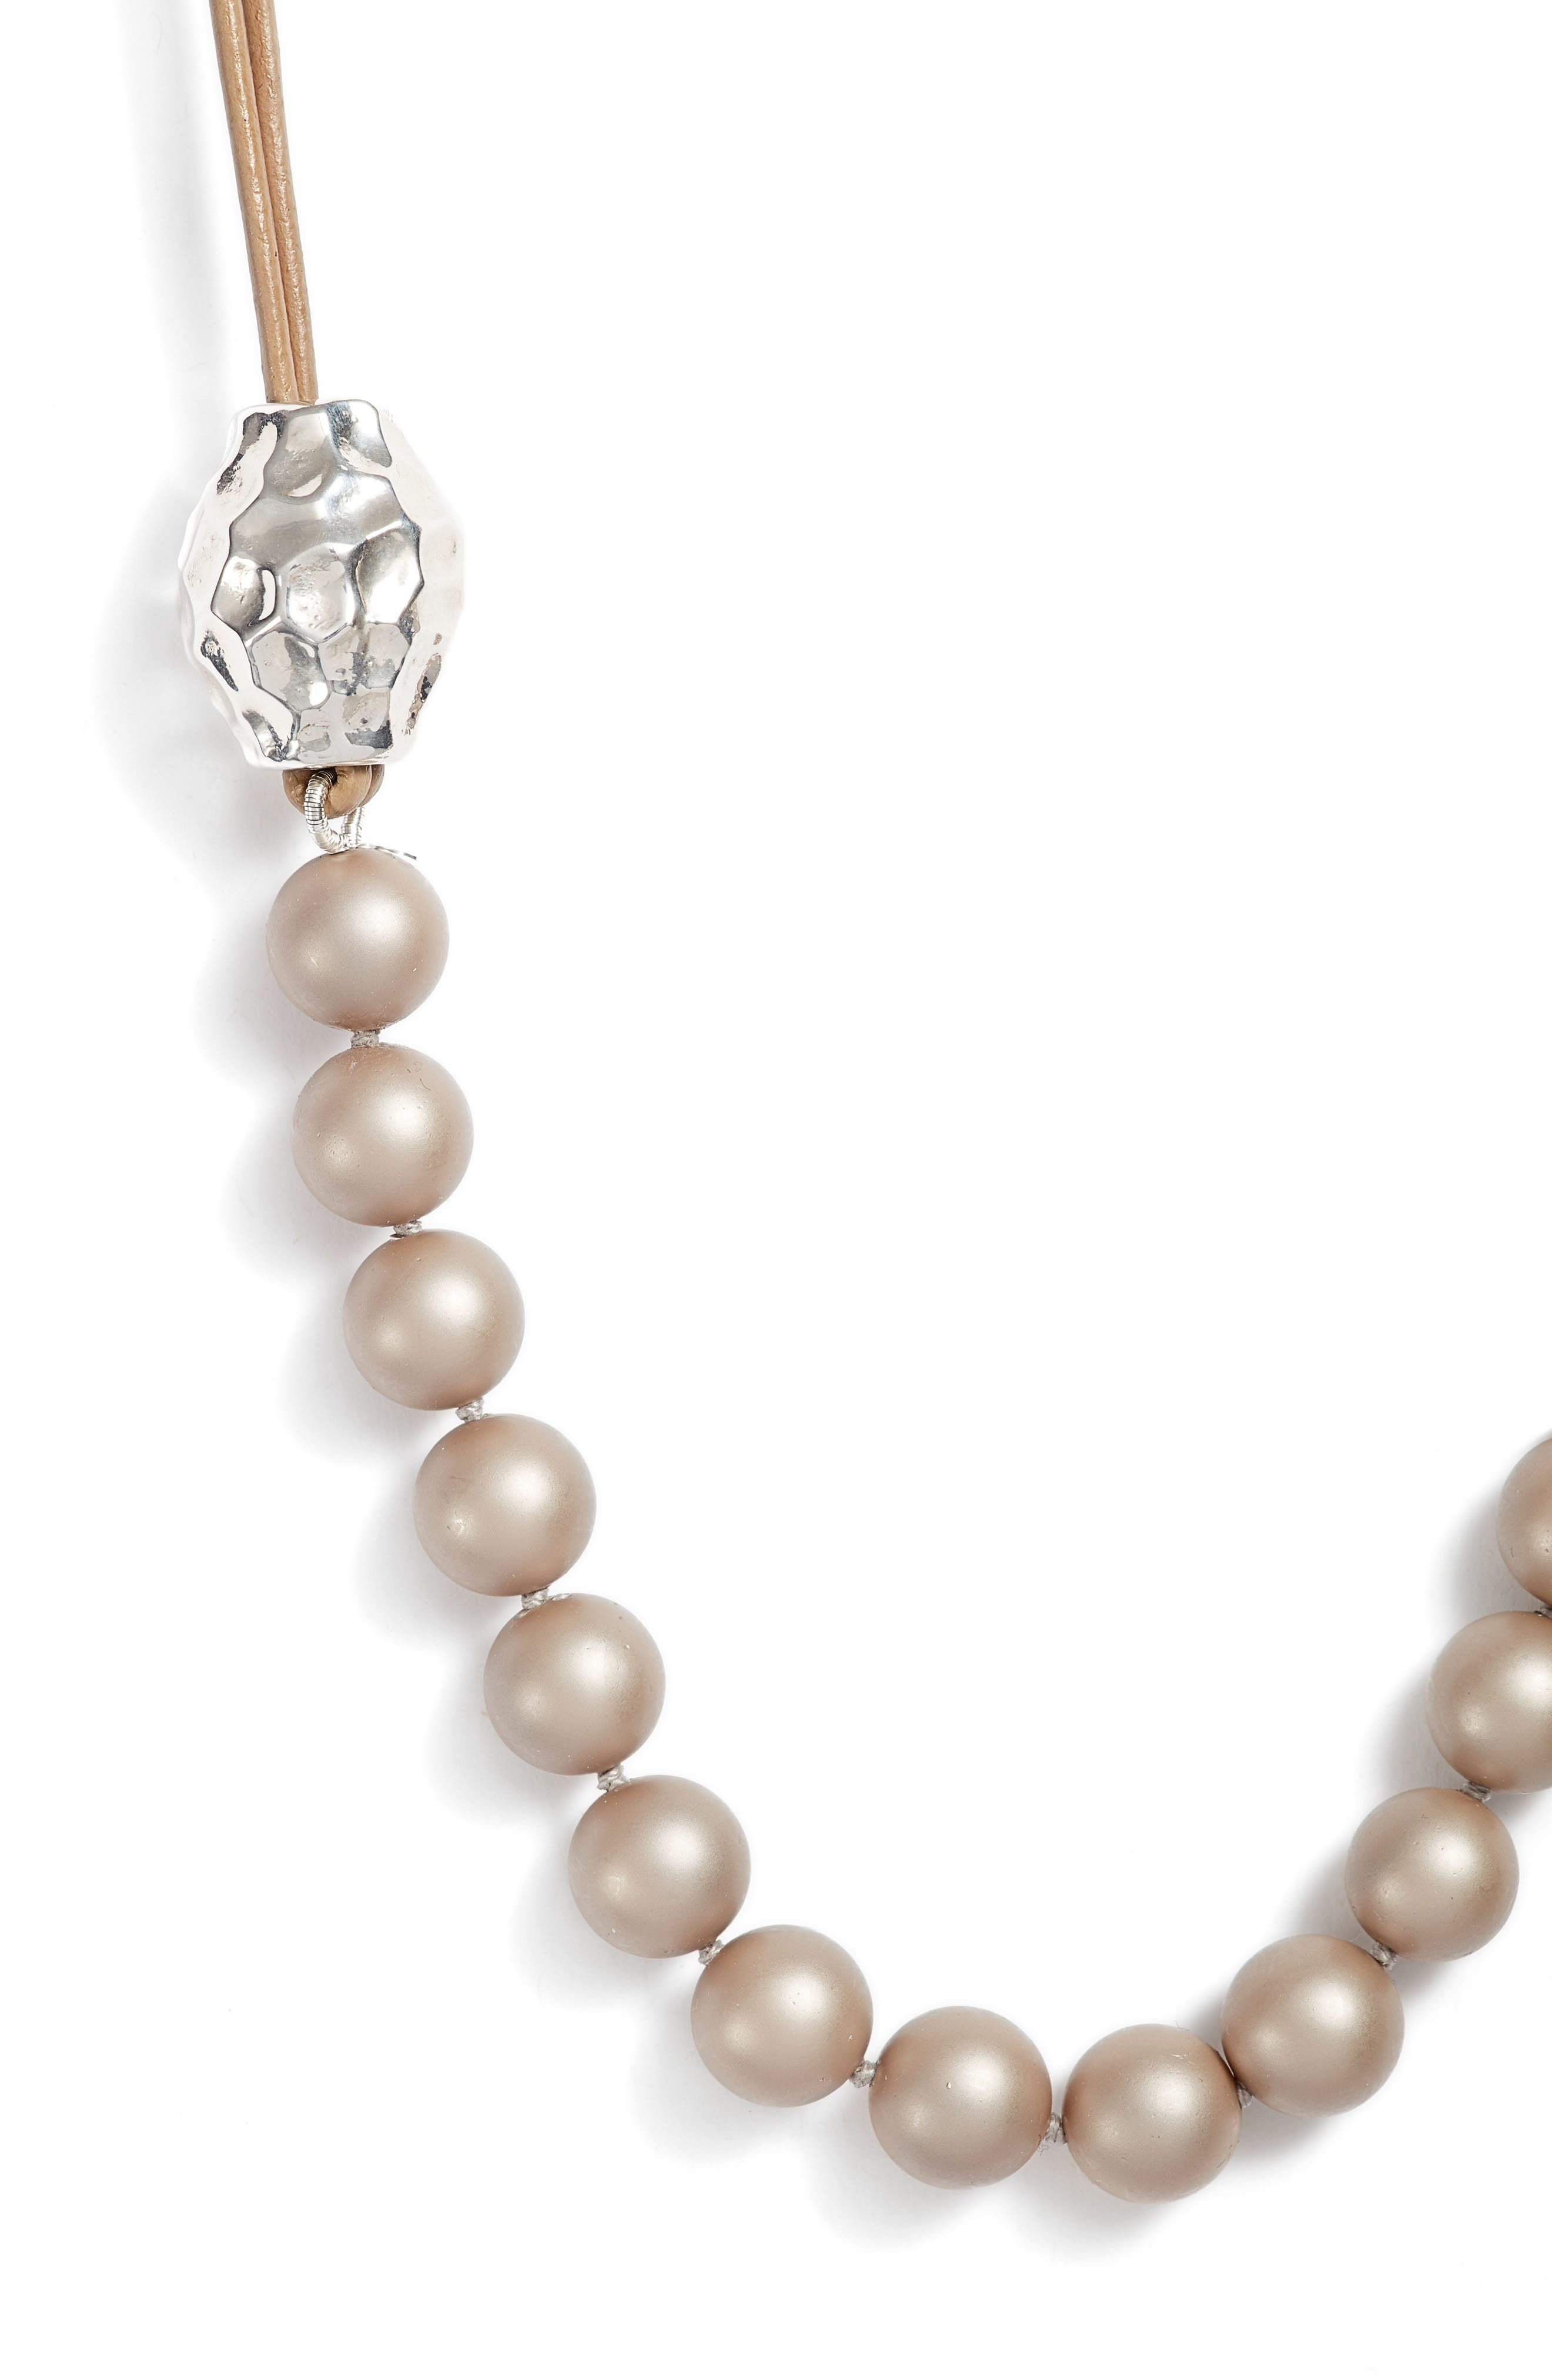 Imitation Pearl & Sterling Silver Strand Necklace,                             Alternate thumbnail 2, color,                             250